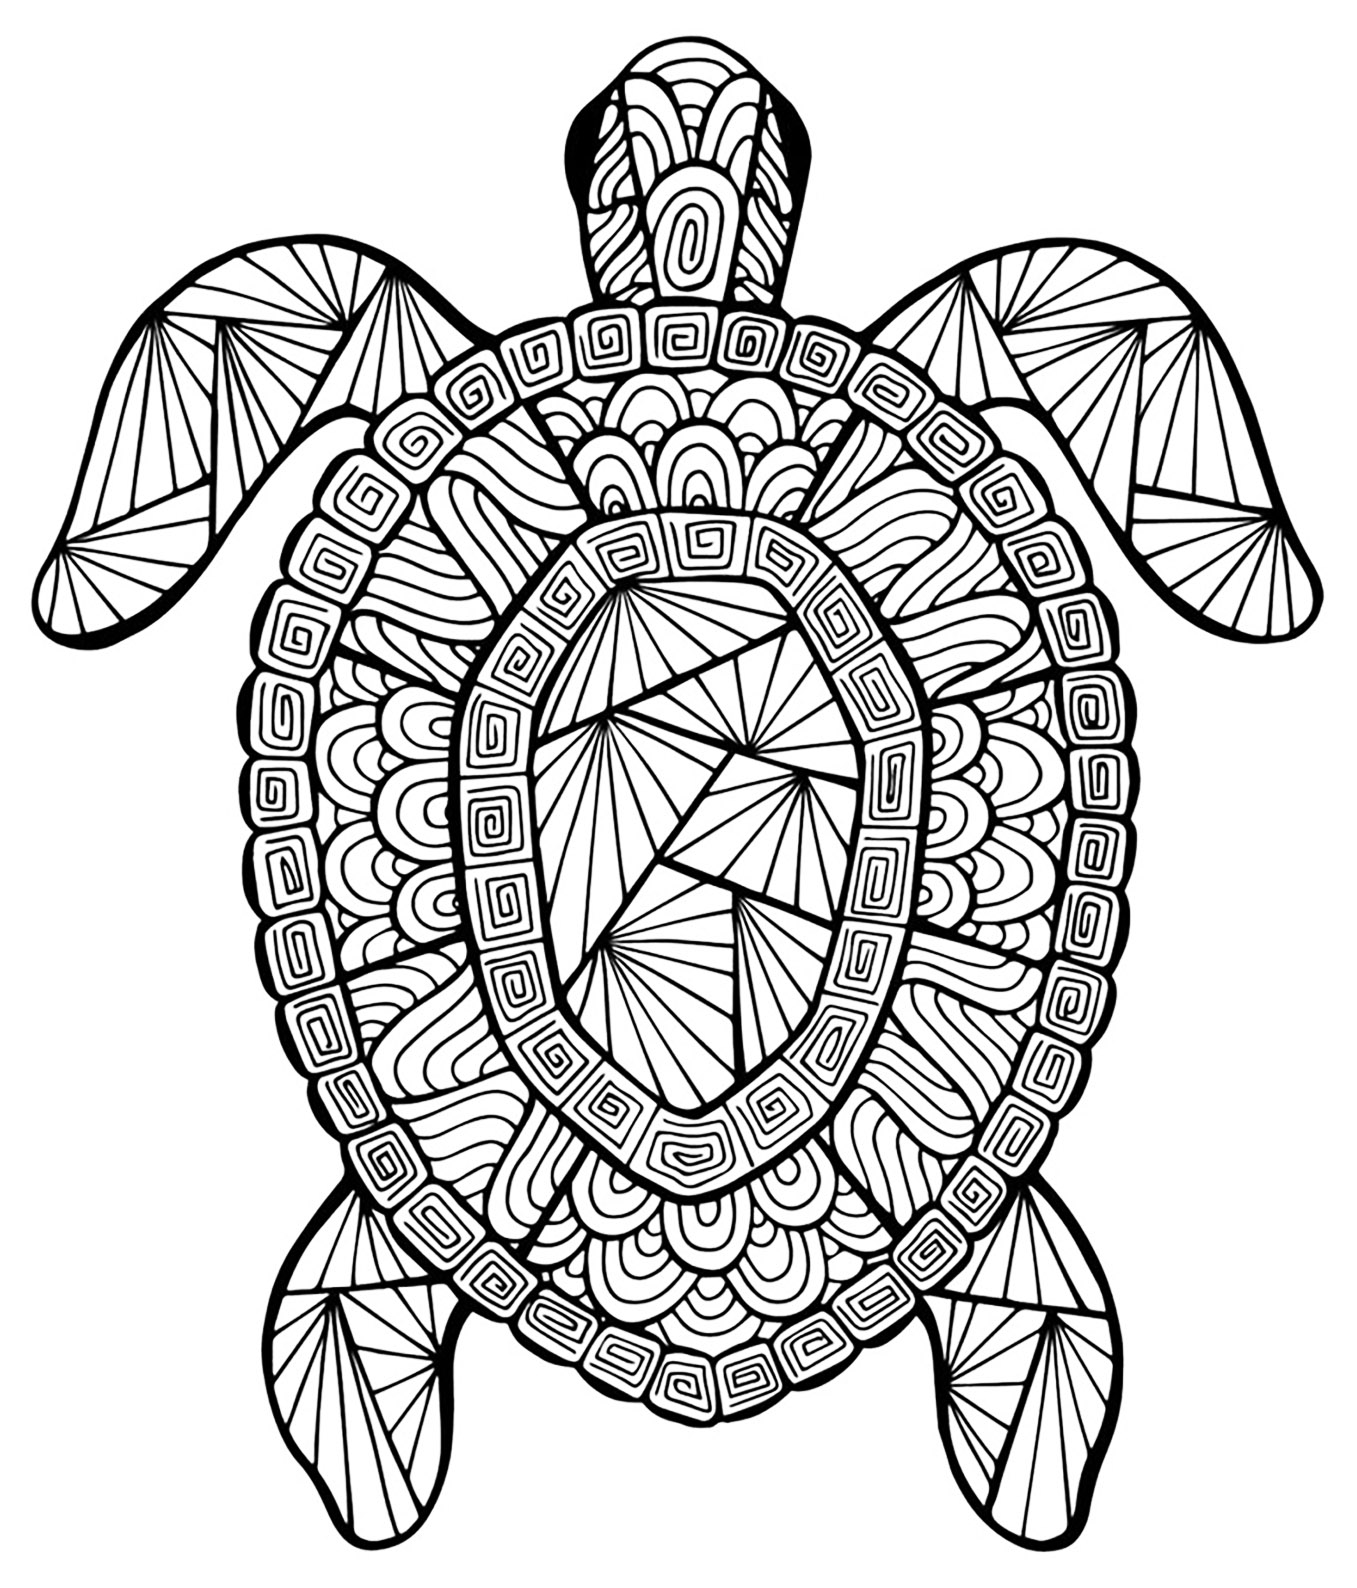 Incredible turtle Animals Coloring pages for adults